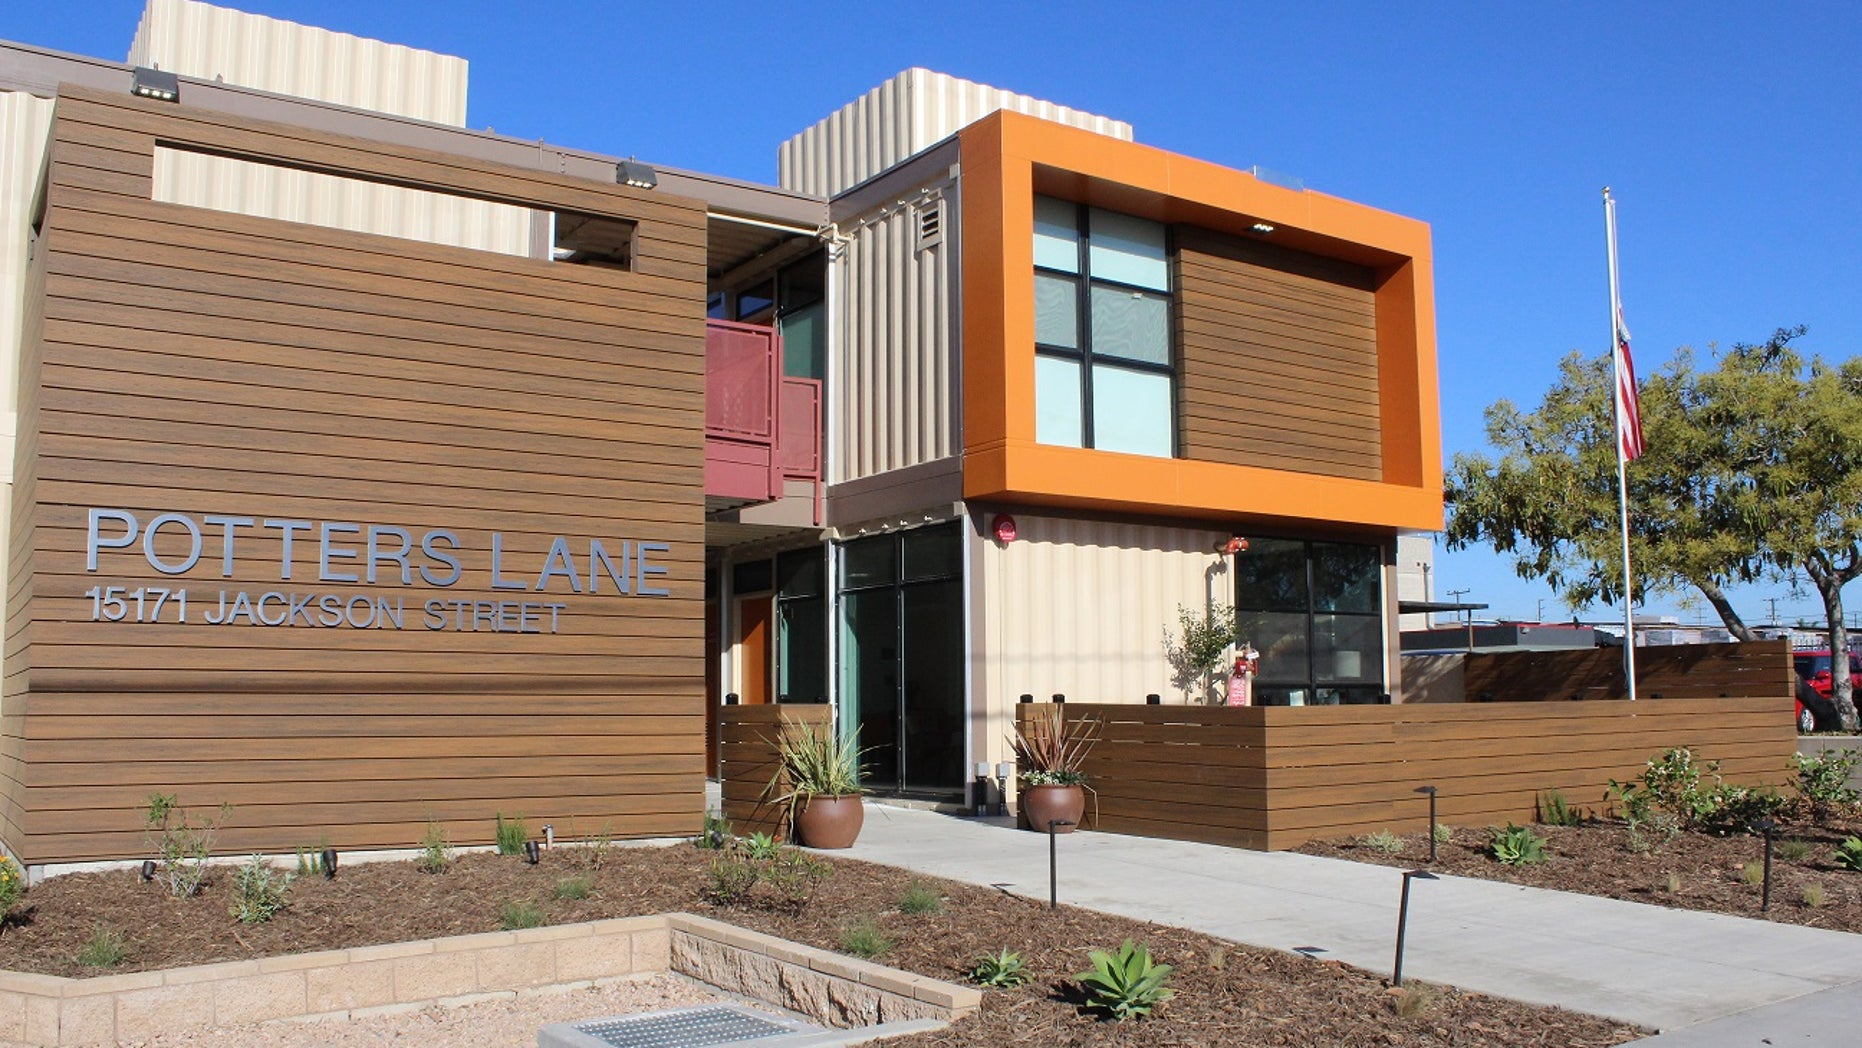 The Potter's Lane apartment complex, located in Middle City, Calif., houses homeless veterans. The complex is composed of recycled shipping containers.